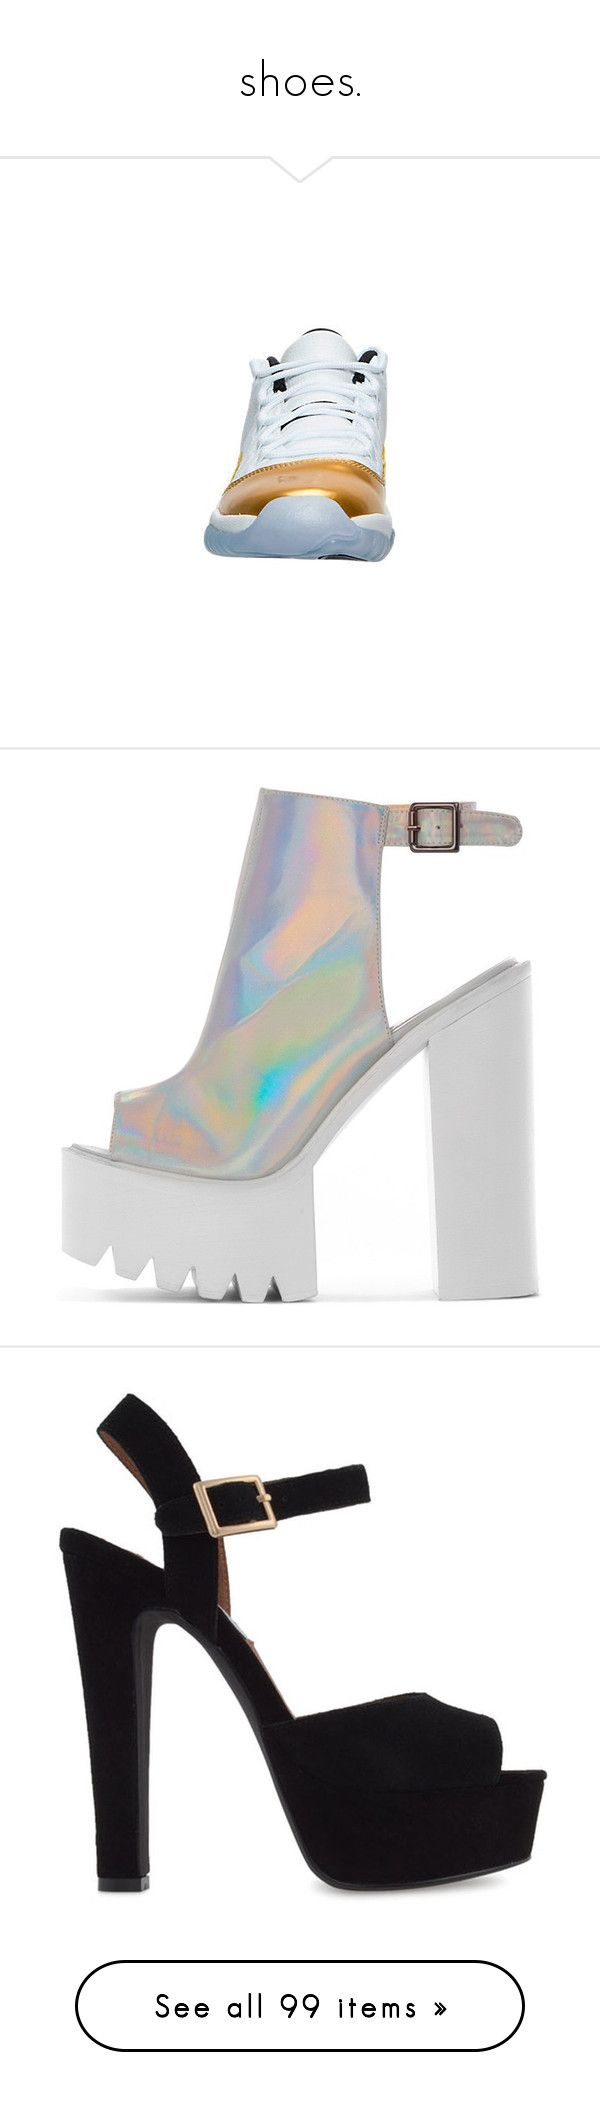 """""""shoes."""" by letsgetl0st ❤ liked on Polyvore featuring shoes, sandals, heels, grey, holographic sandals, silver heeled sandals, grey heeled shoes, silver slingbacks, silver shoes and zapatos"""